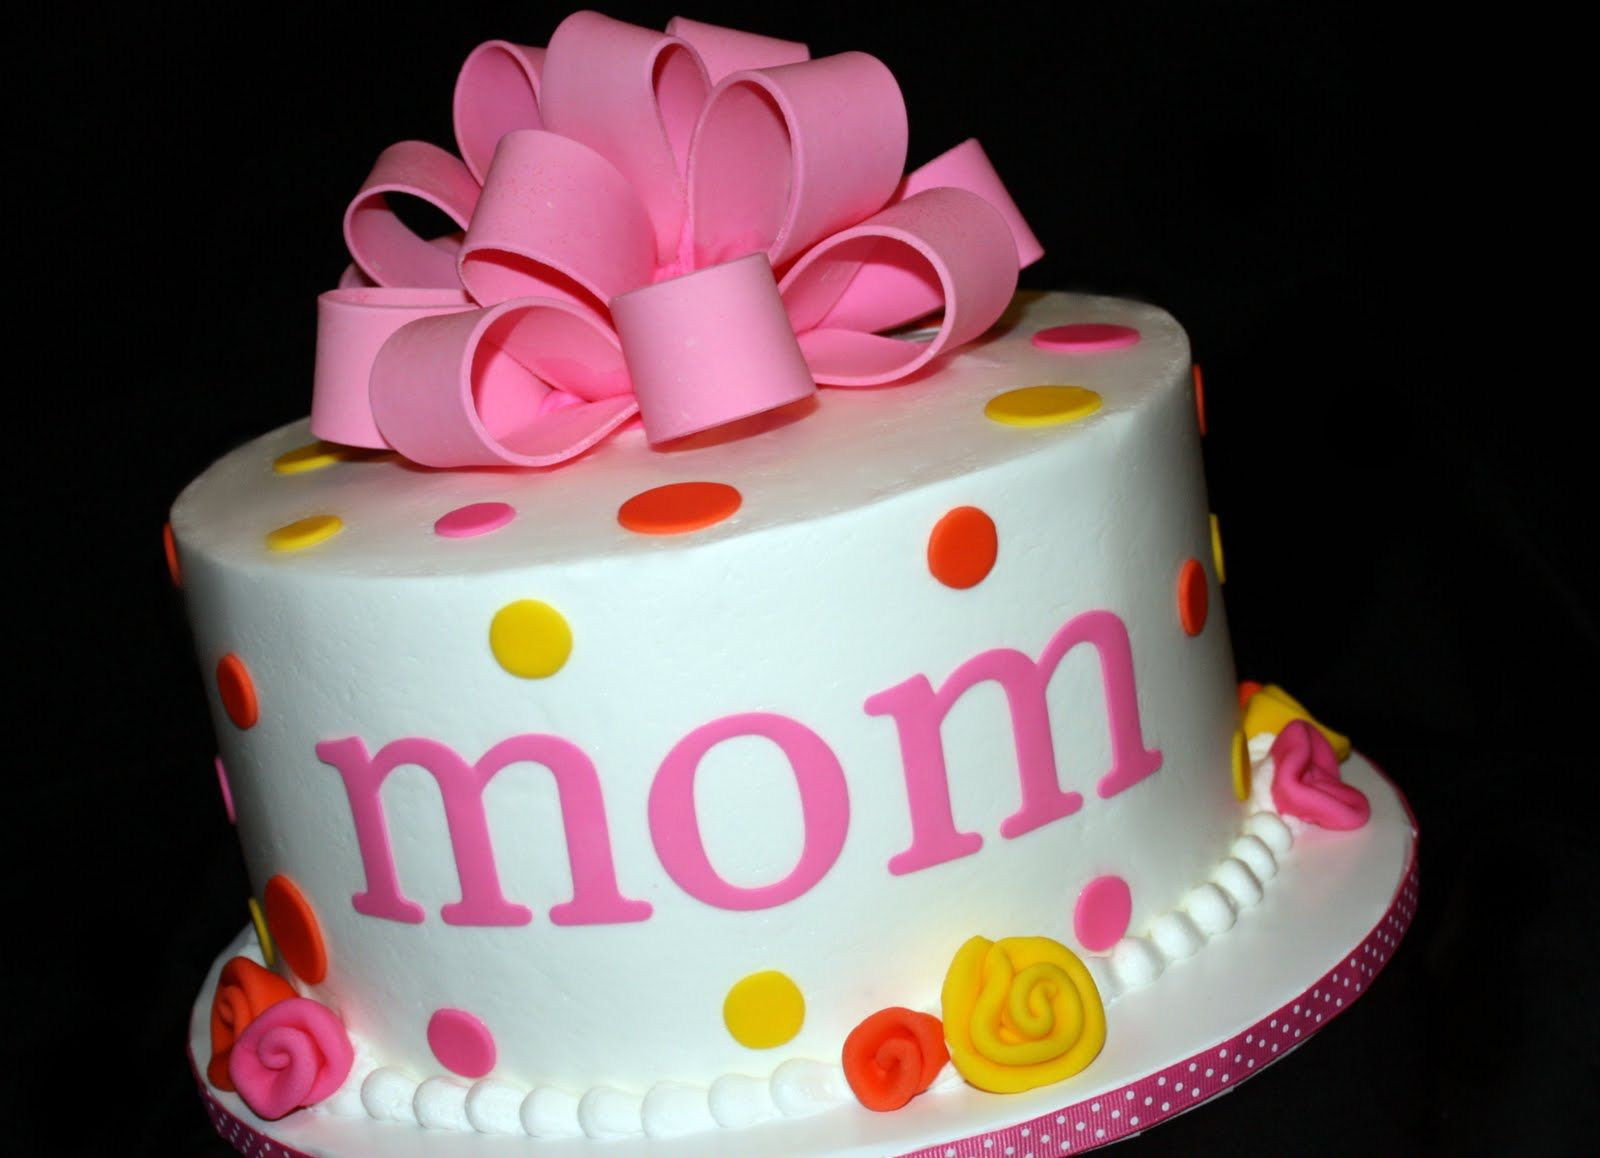 Mother Birthday Cake Photo : fun cakes Mom Birthday Cake fun cakes Pinterest ...